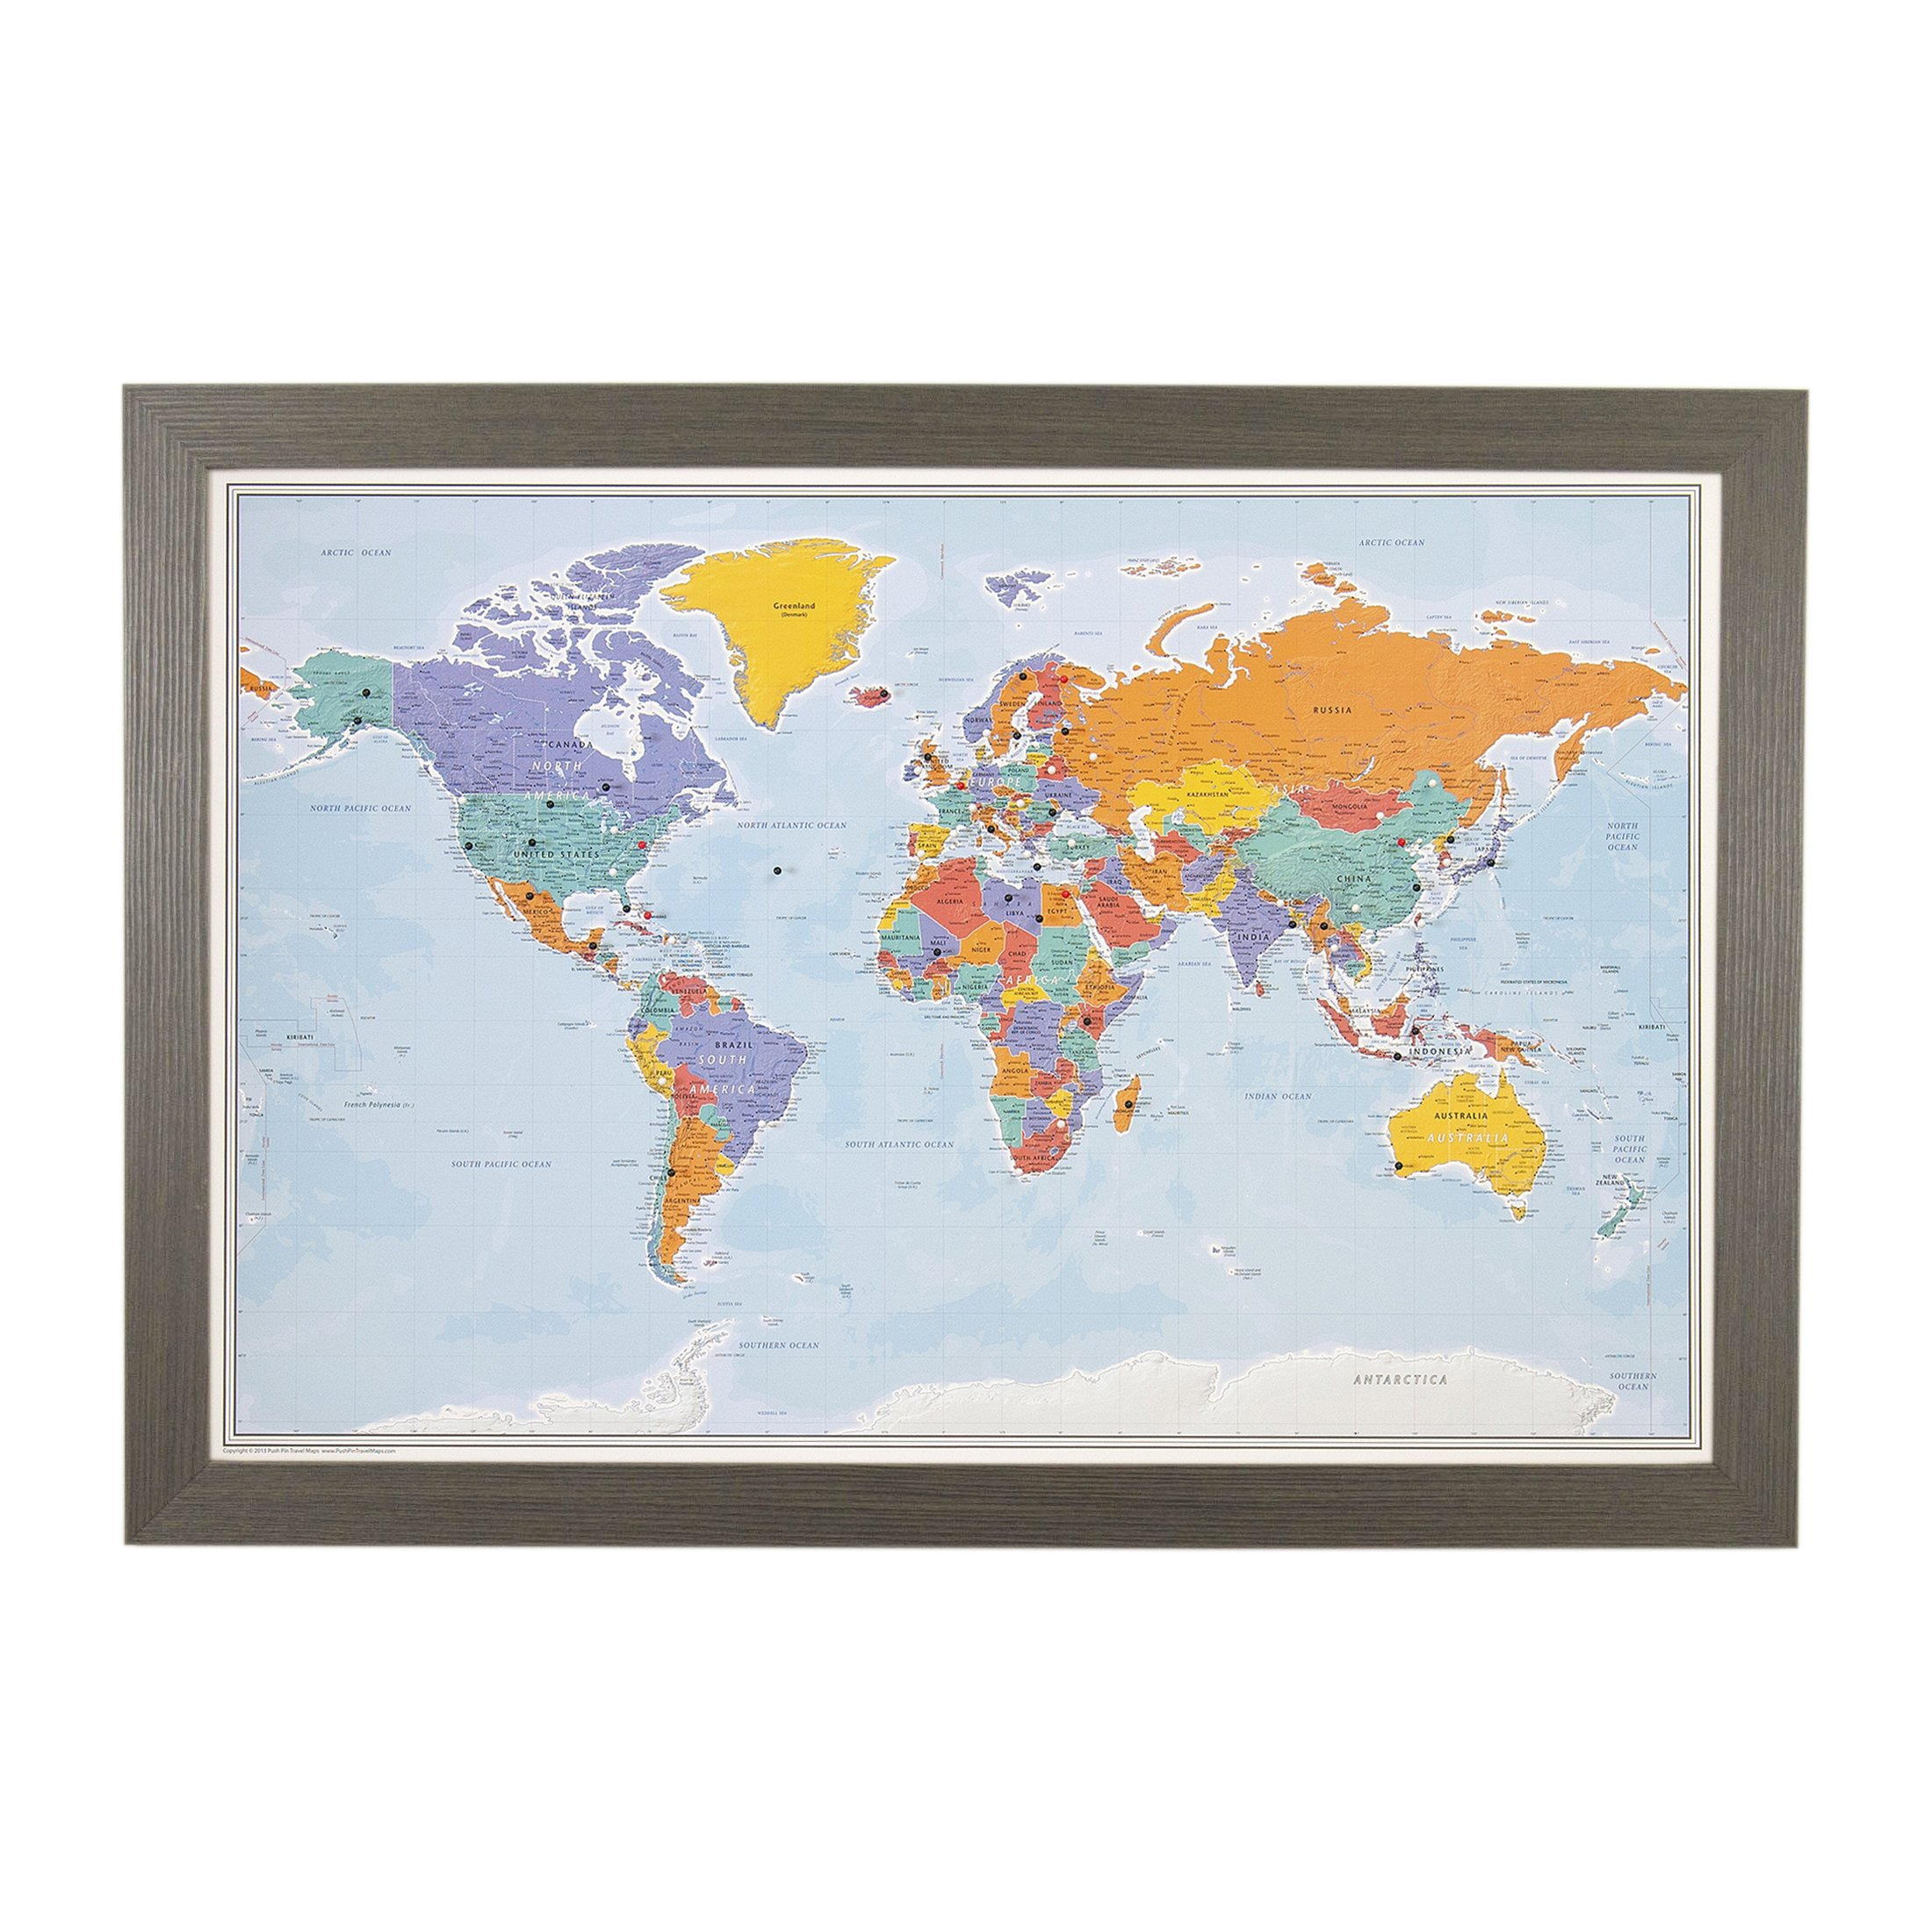 Push Pin World Travel Map with Barnwood Gray Frame and Pins - Blue Oceans 24 x 36